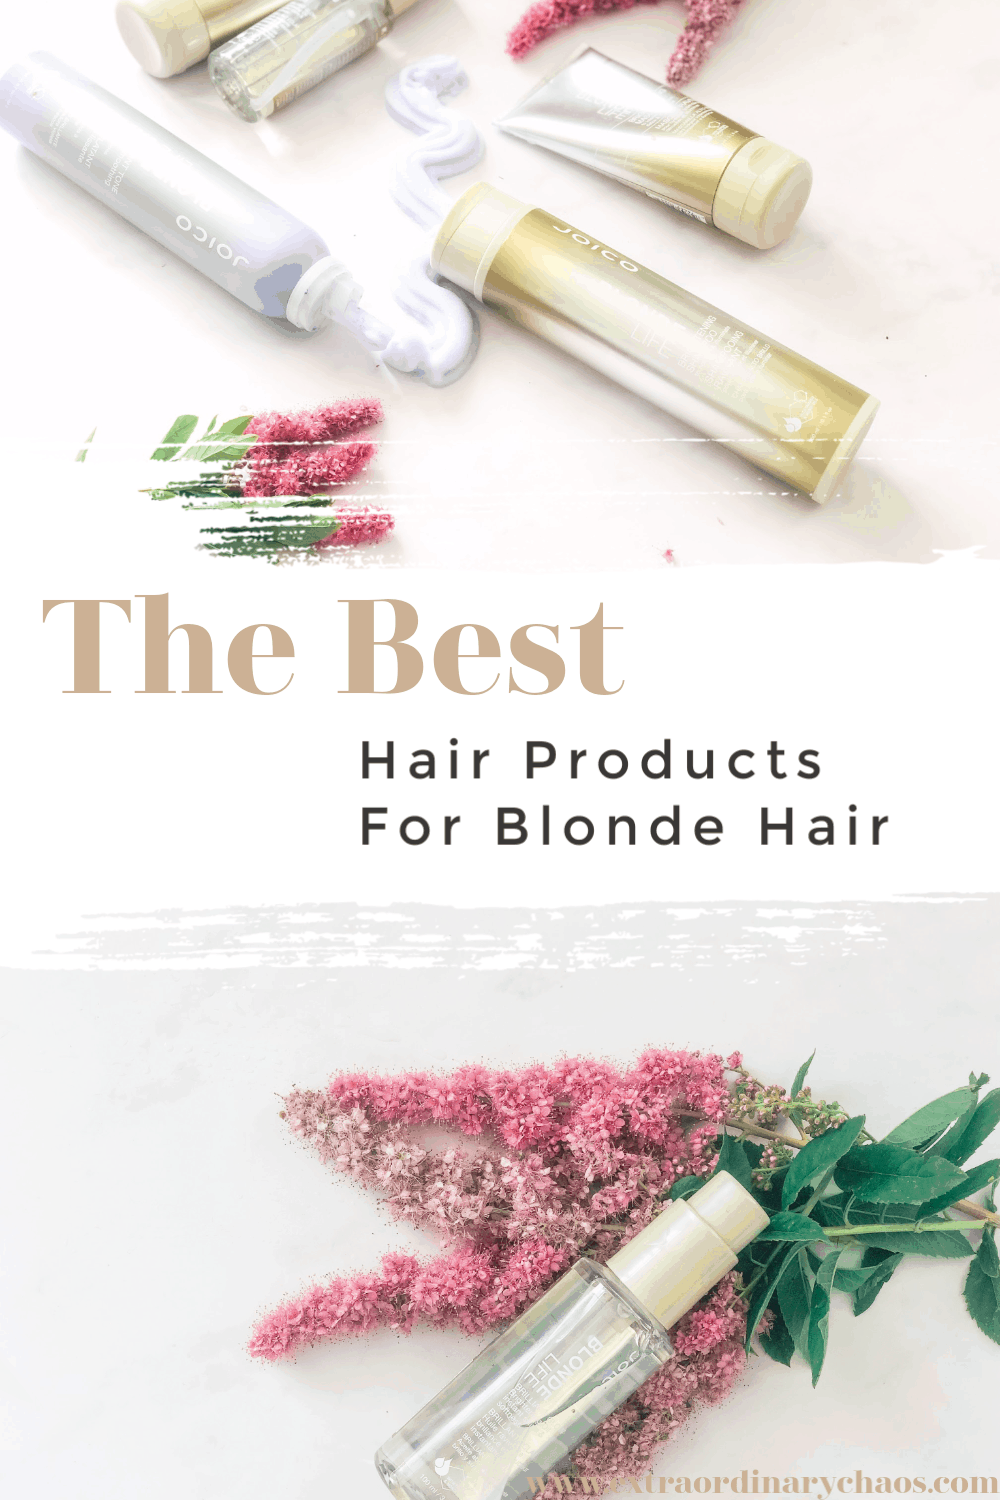 The best hair products for blonde hair